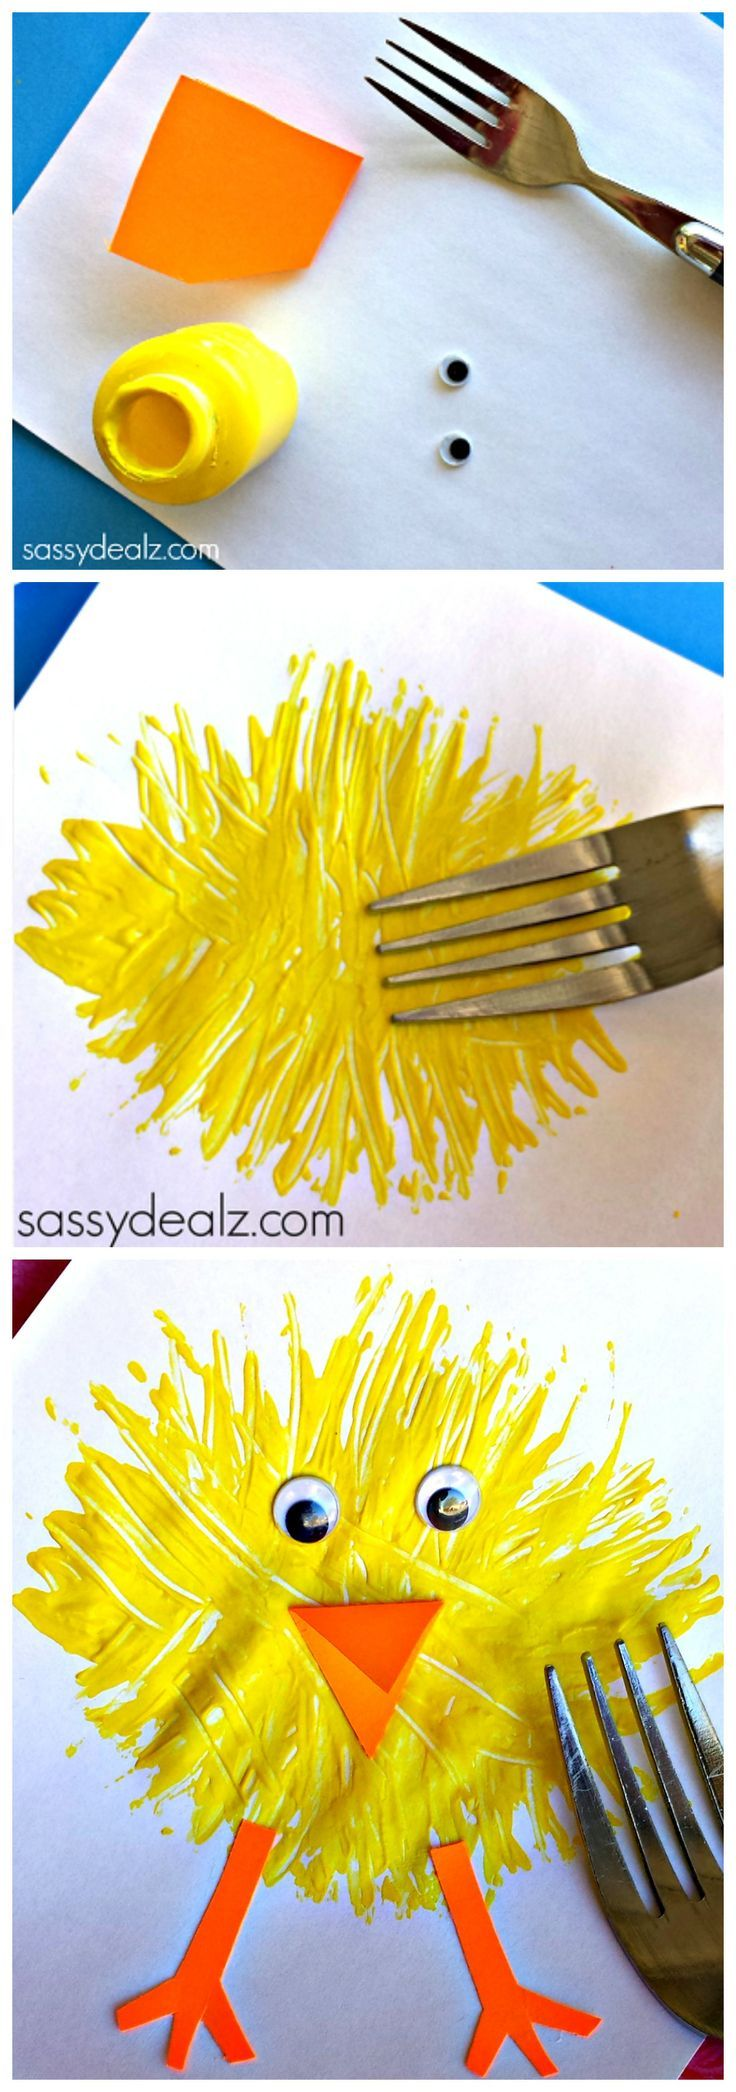 Make a Chick Craft using a fork and paint! Such a cute craft for kids!